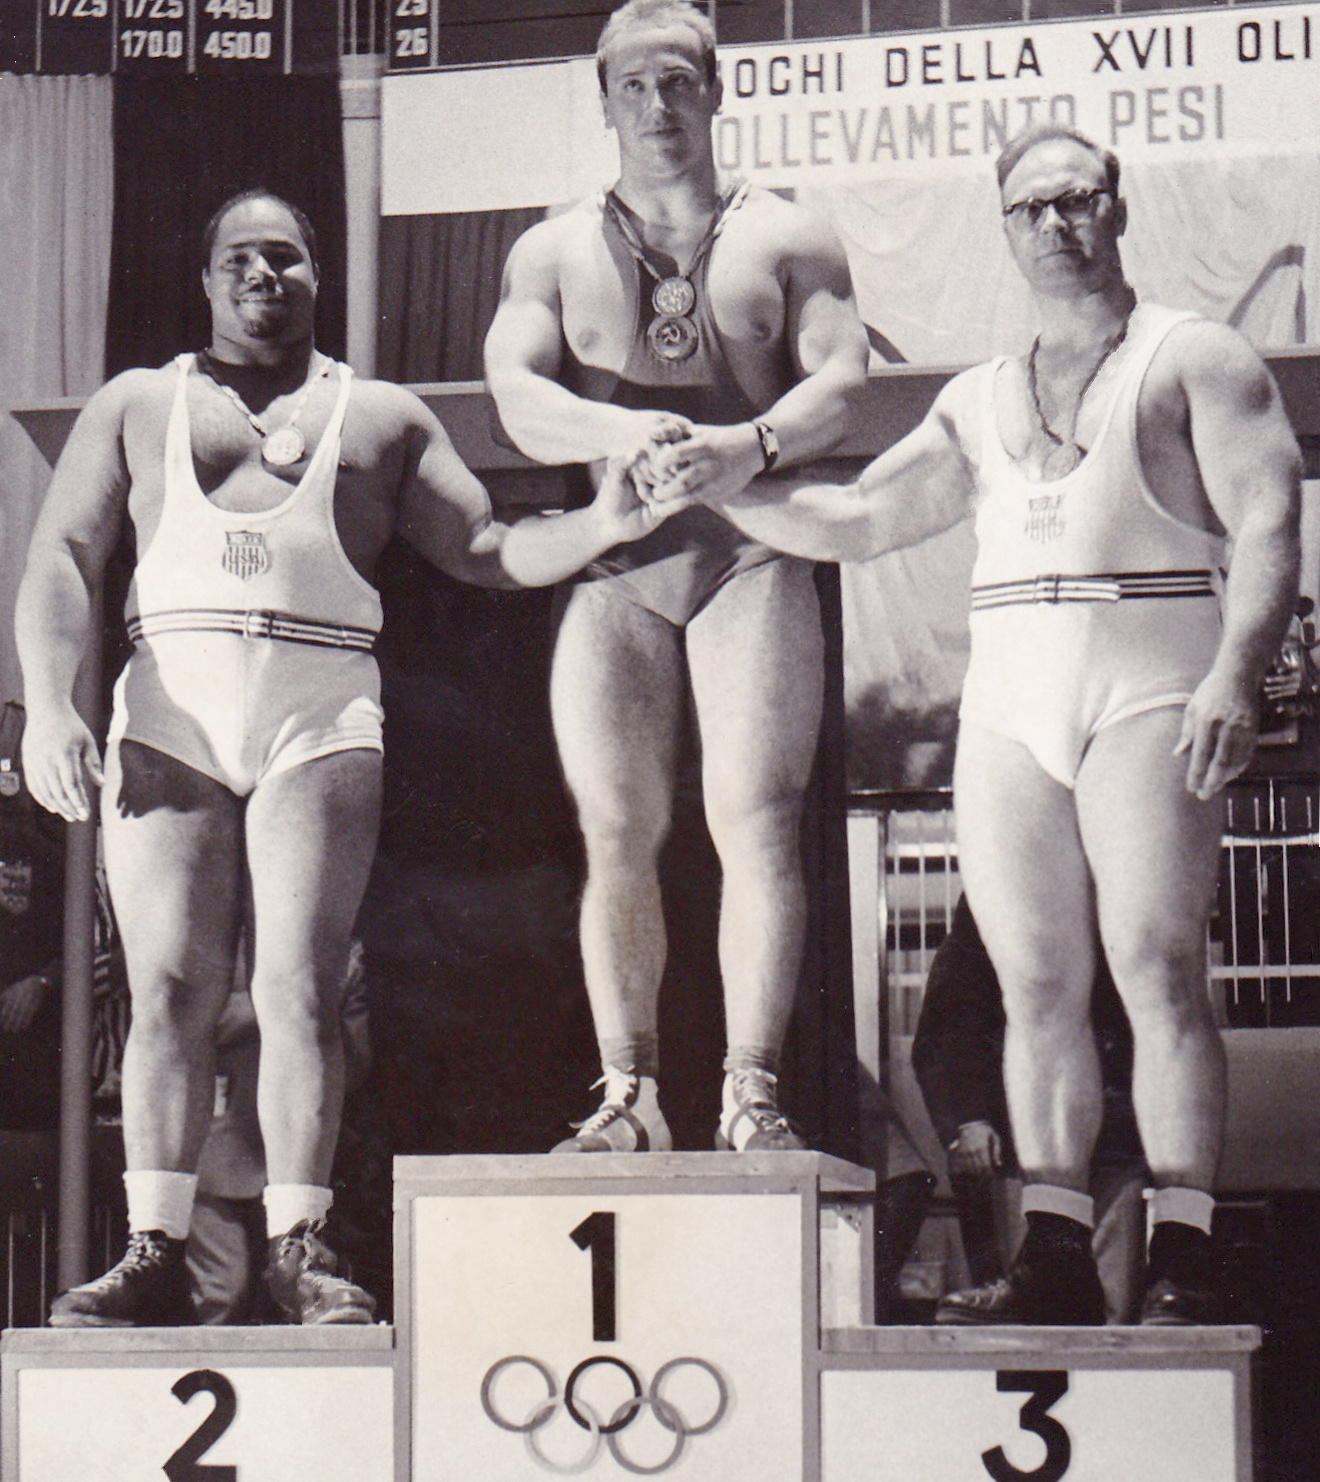 Yury Vlasov - Another strength giant you've likely never heard of